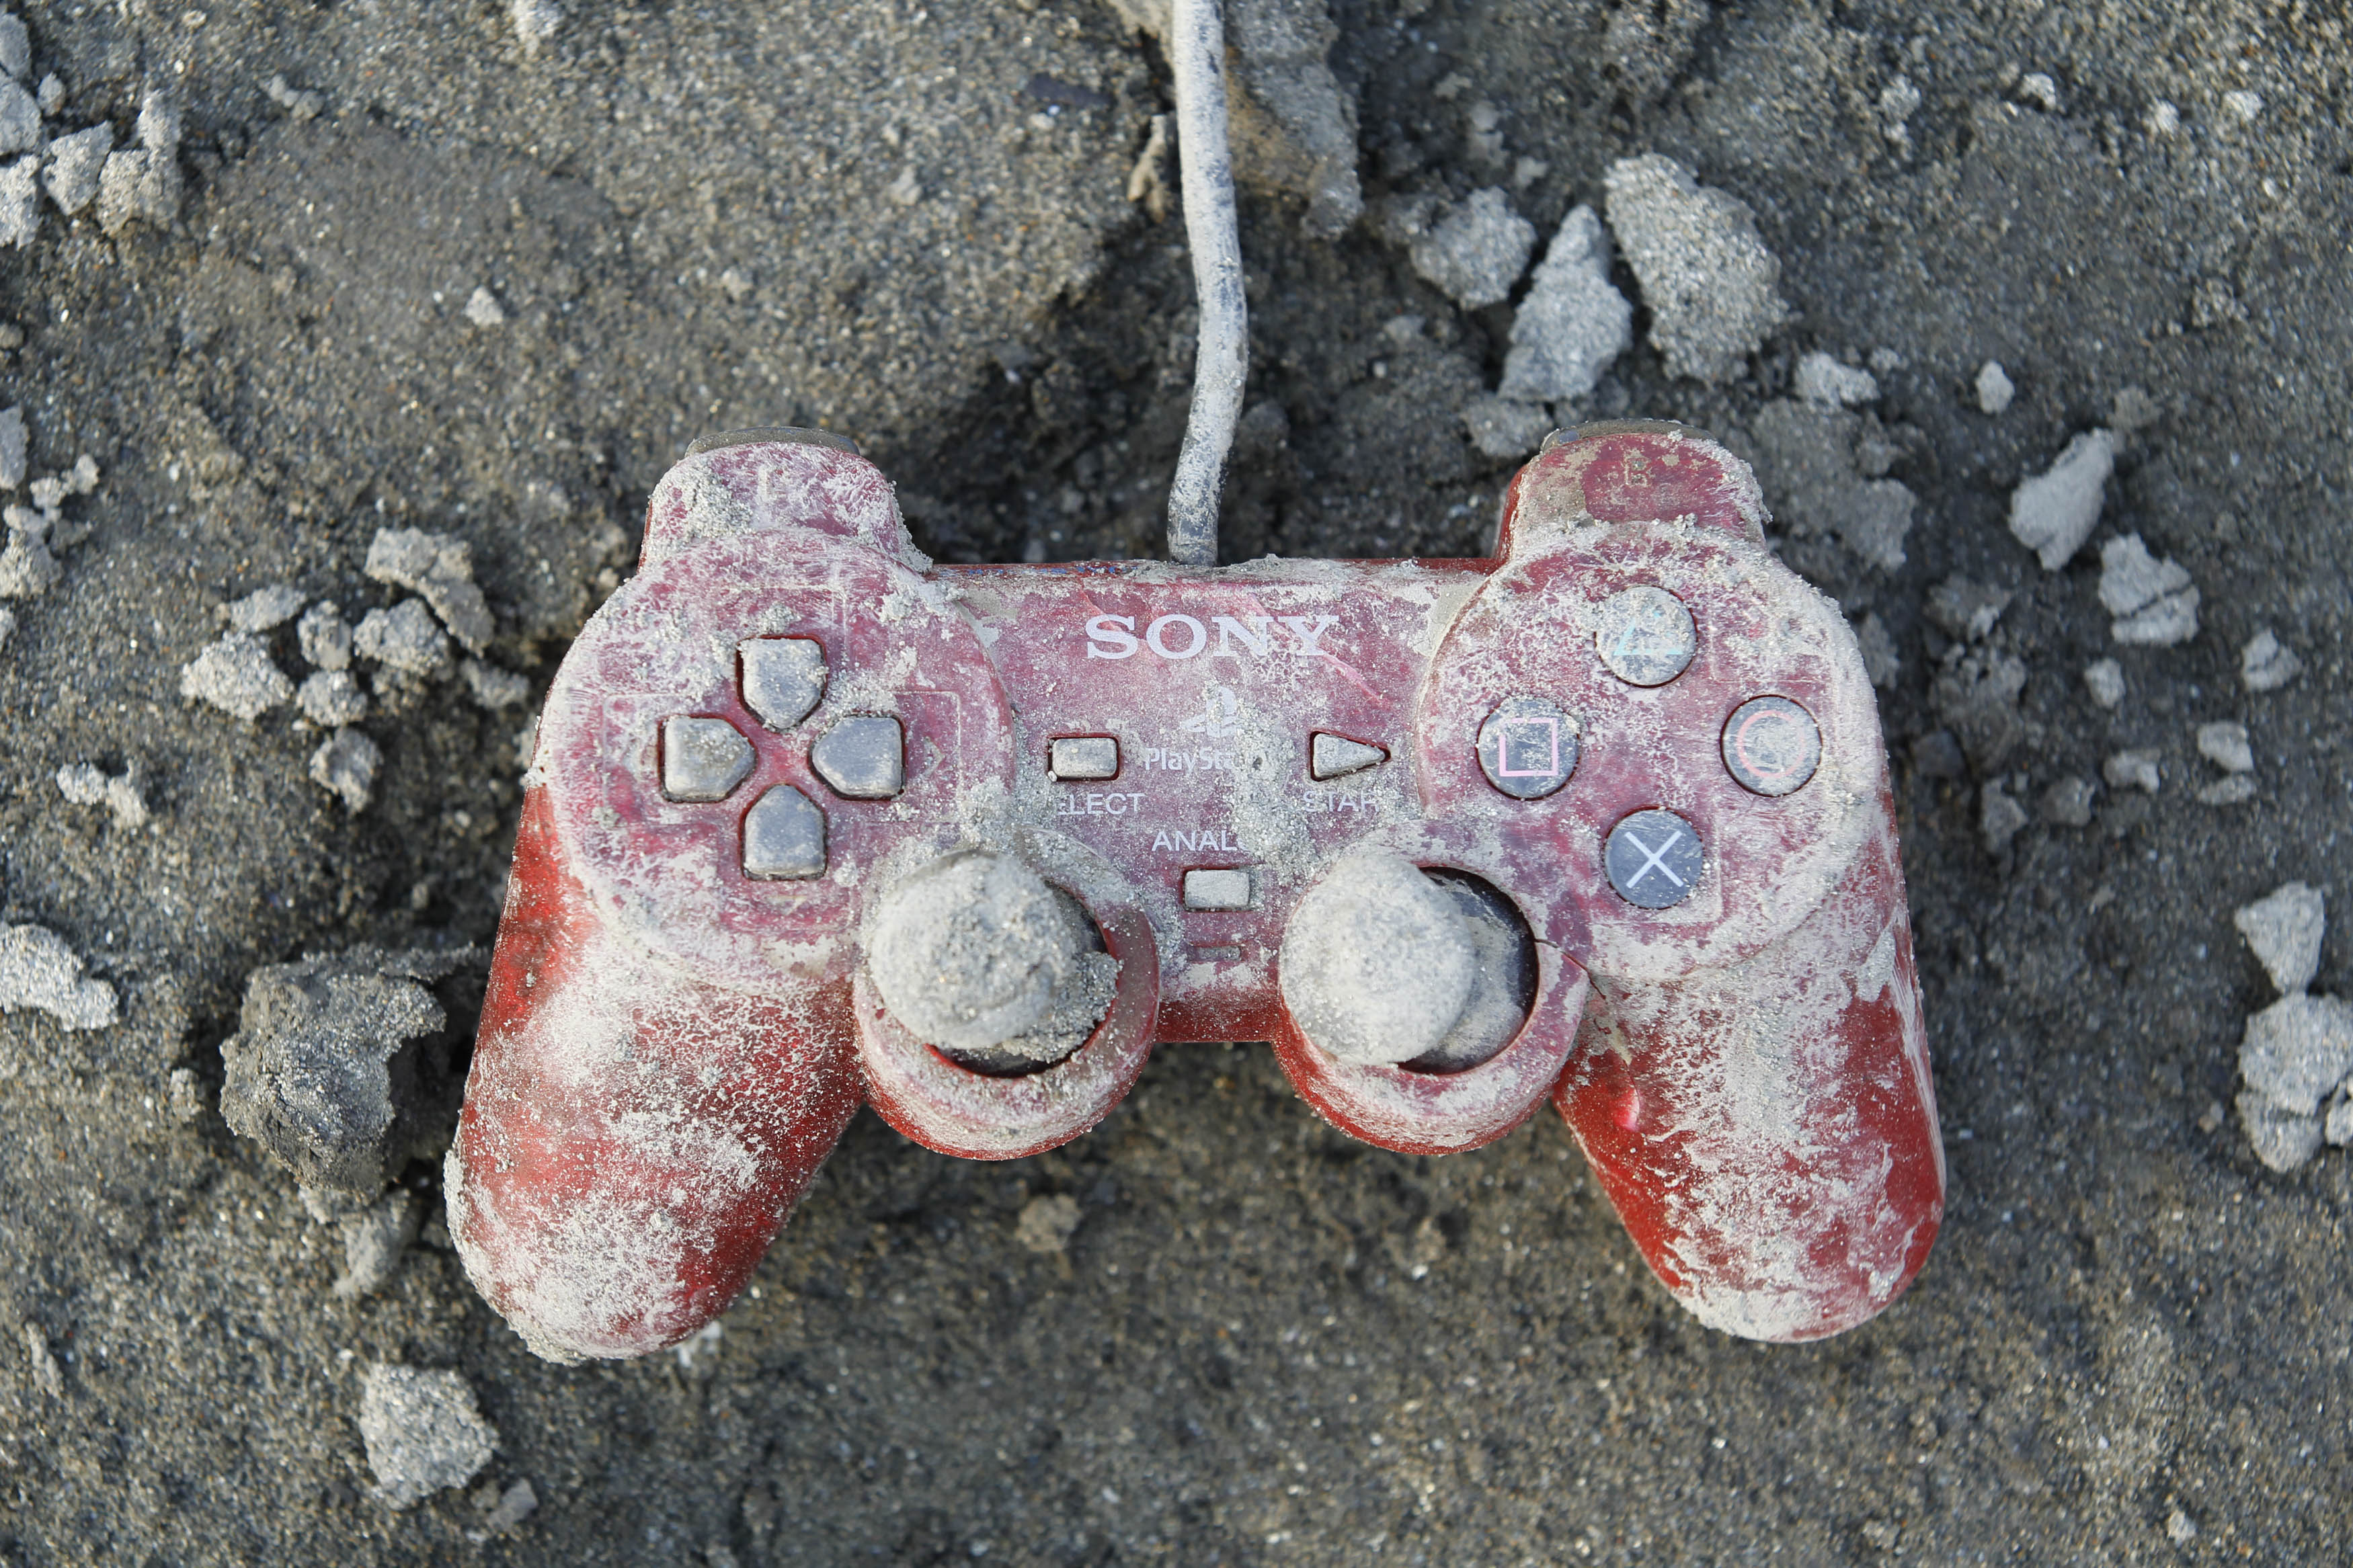 Clean Your Controllers, Consoles and Other Gaming Stuff